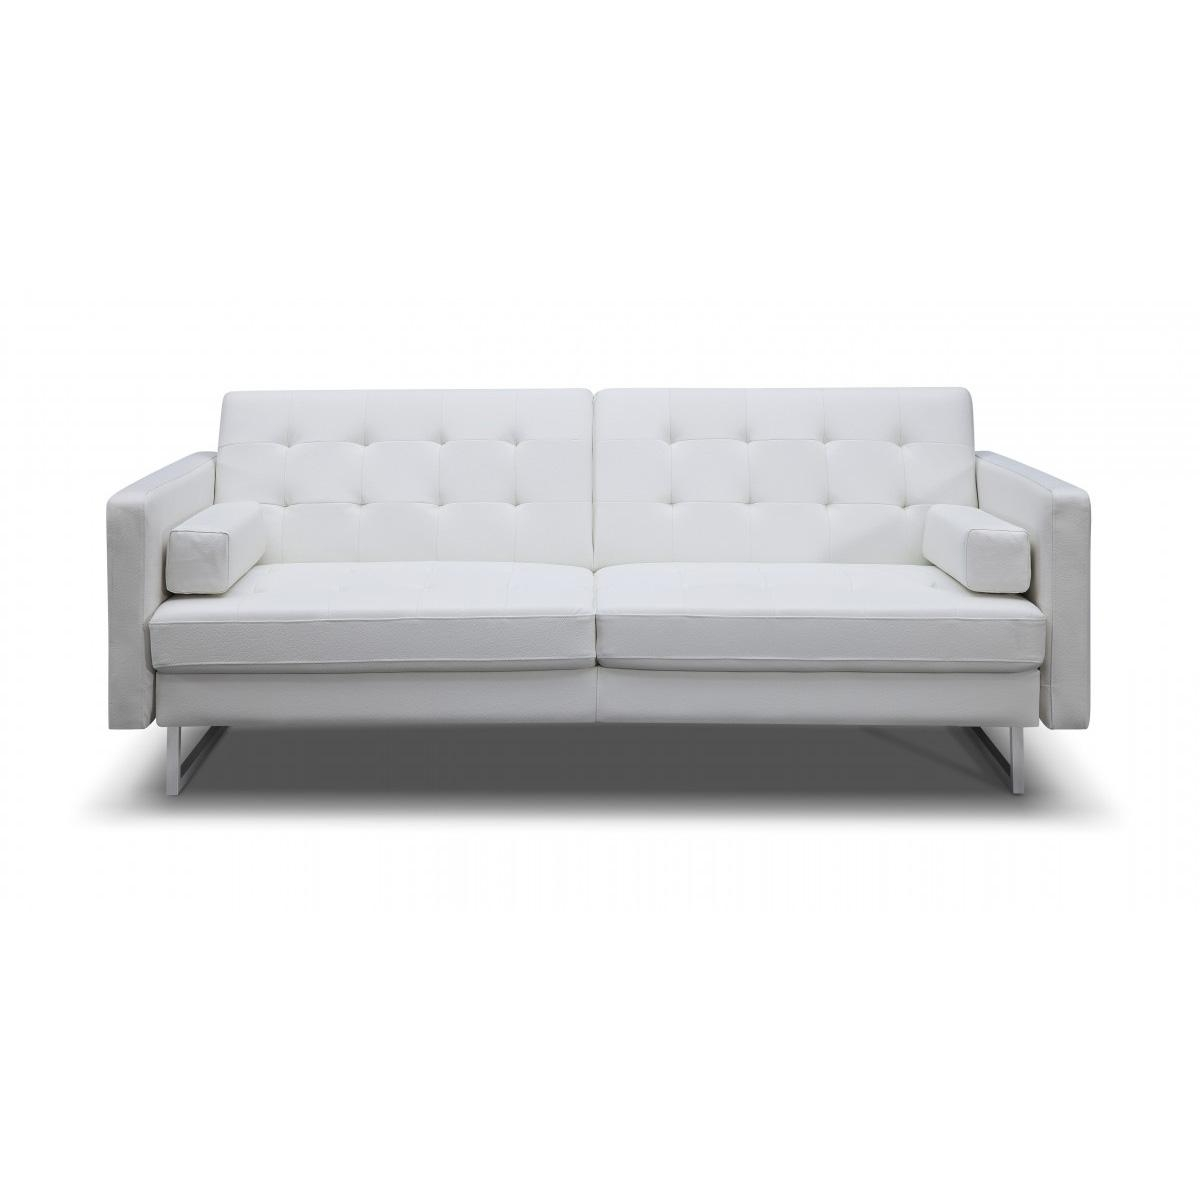 Sofas Center : Faux Leatherleeperofa 87F2517A59Db 1 Mainstays With Faux Leather Sleeper Sofas (View 3 of 20)